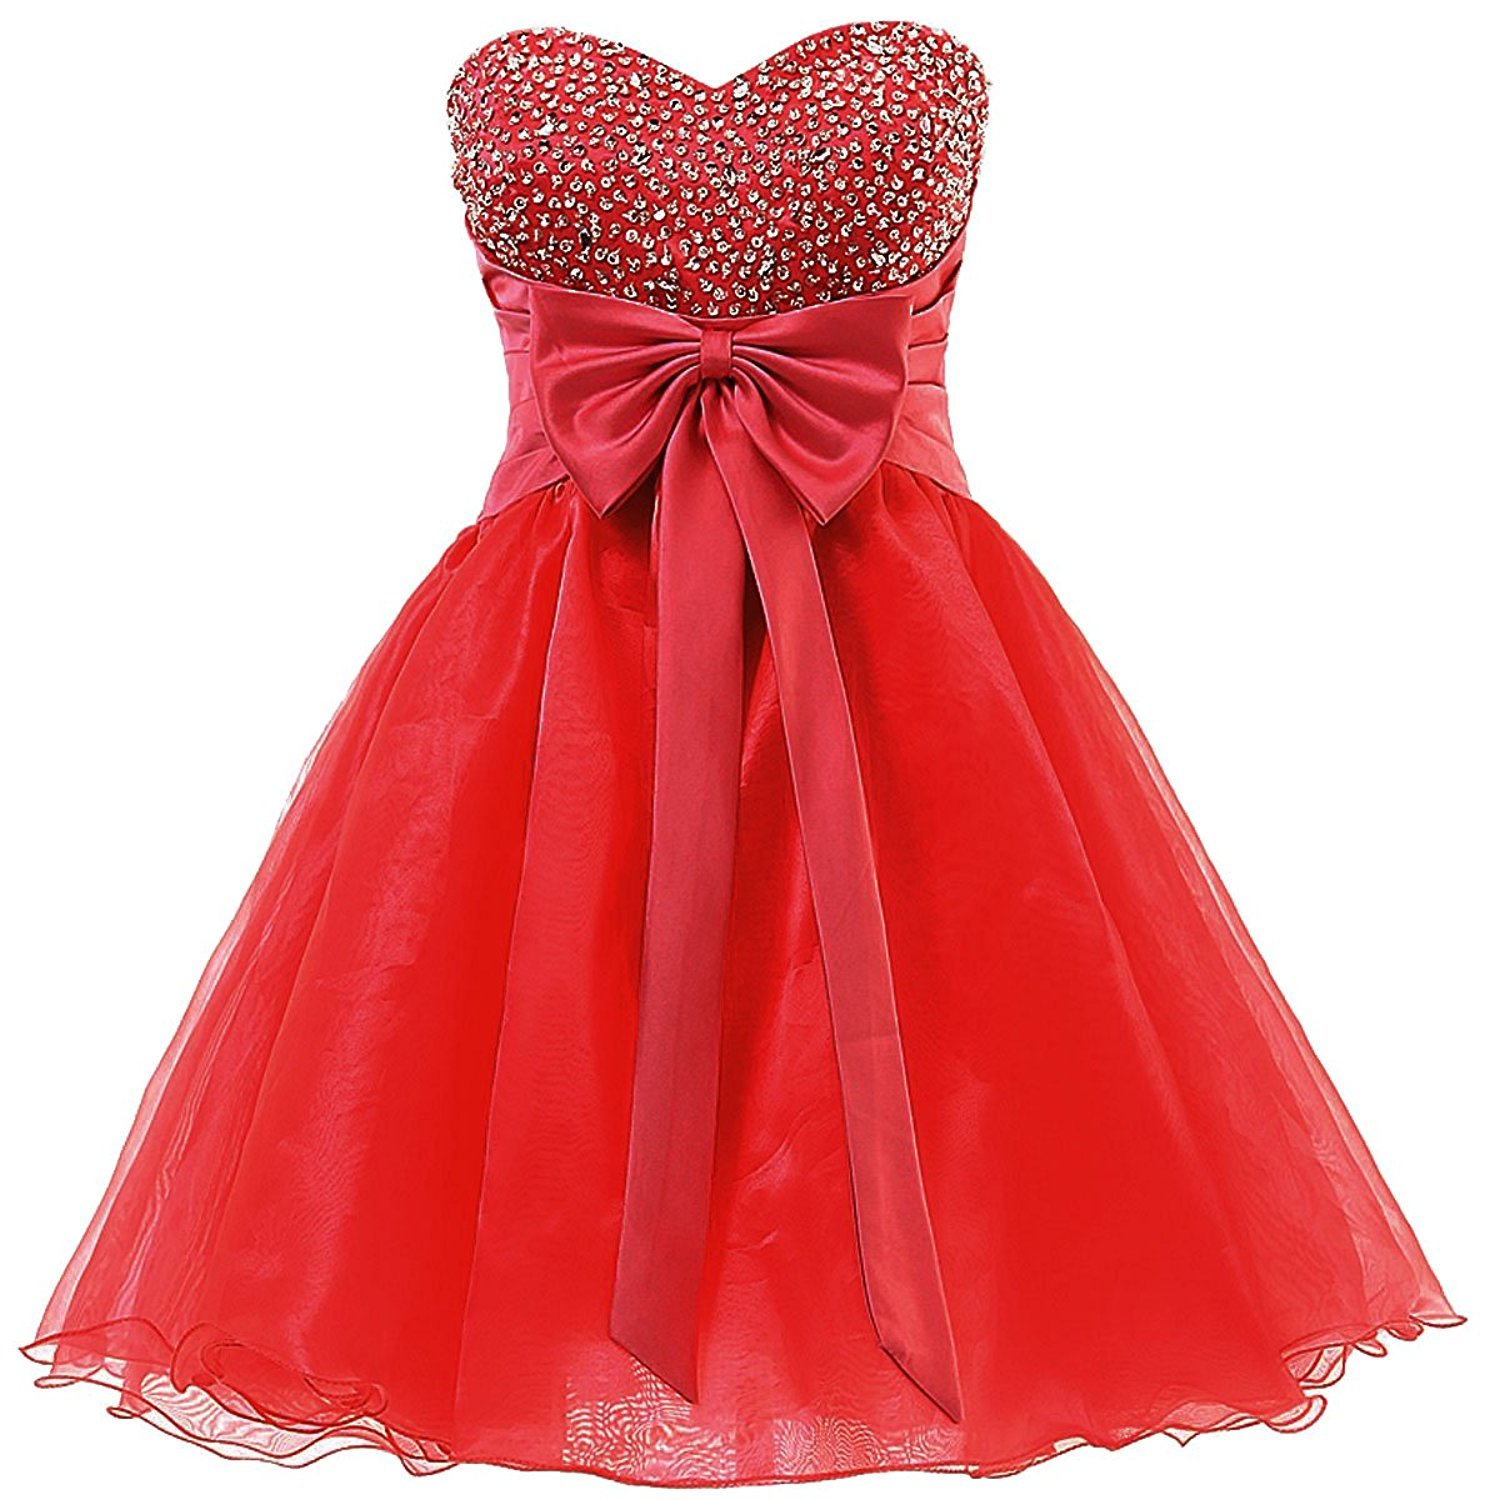 Short Beaded Homecoming Dress Sweetheart Organza Prom Patry Dress wirth Bow 2018 - $115.00